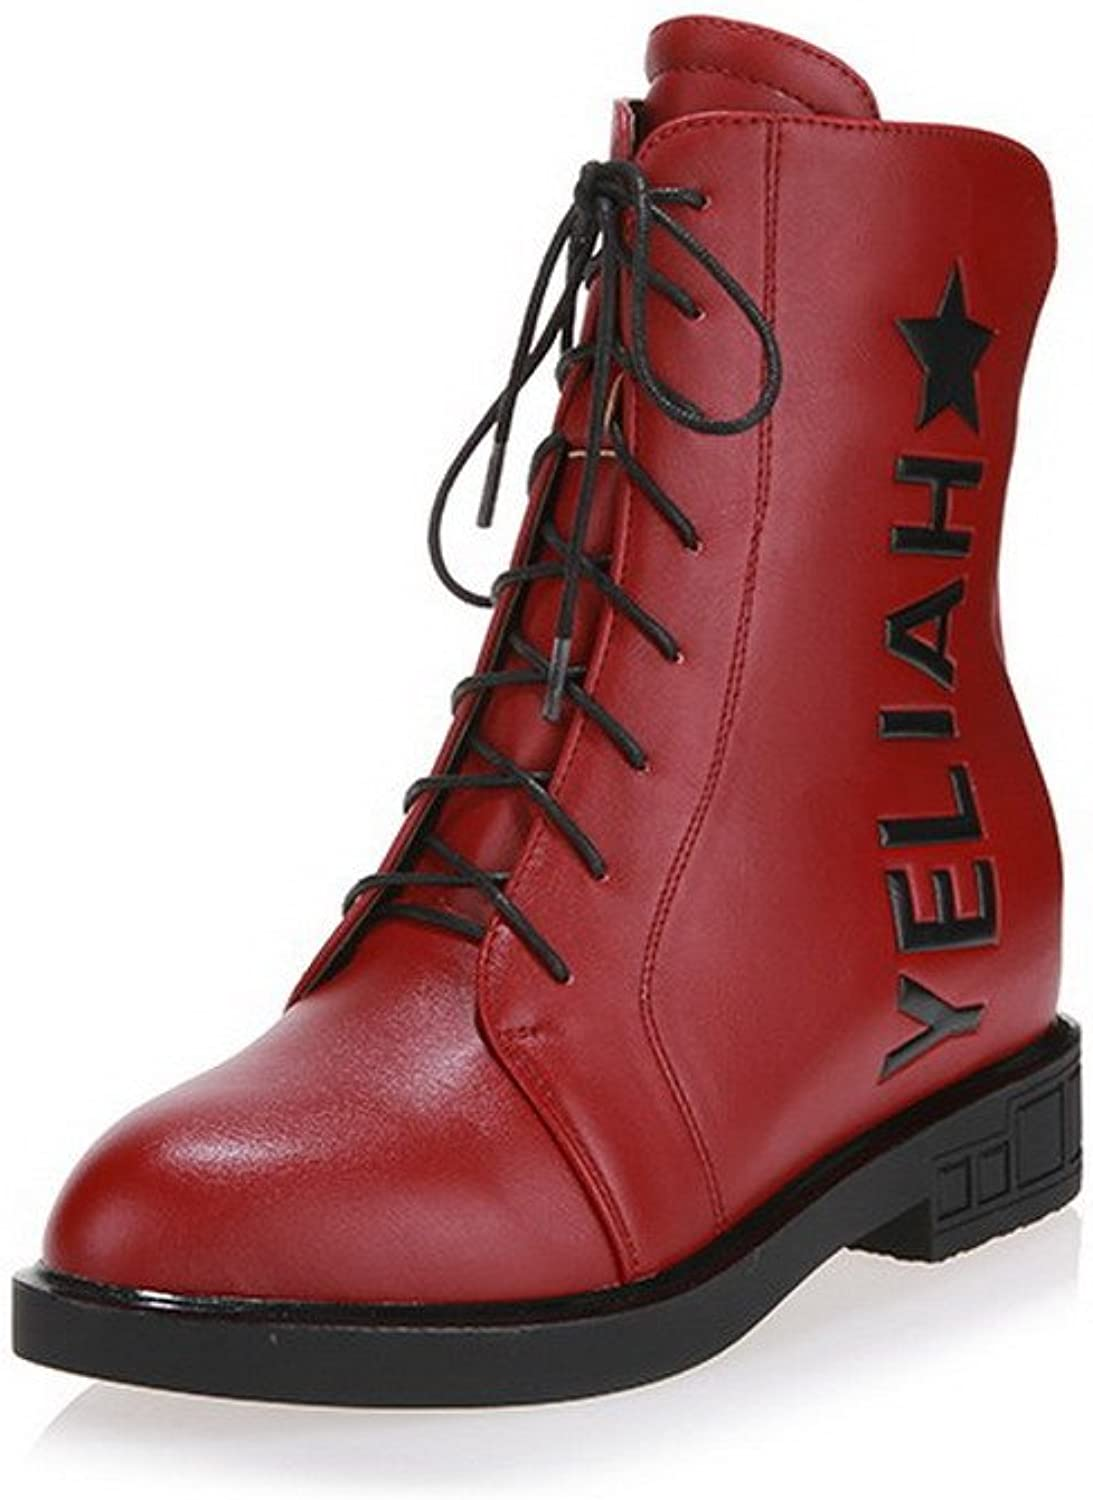 WeiPoot Women's Solid Closed-Toe Boots with Zippers and Platform